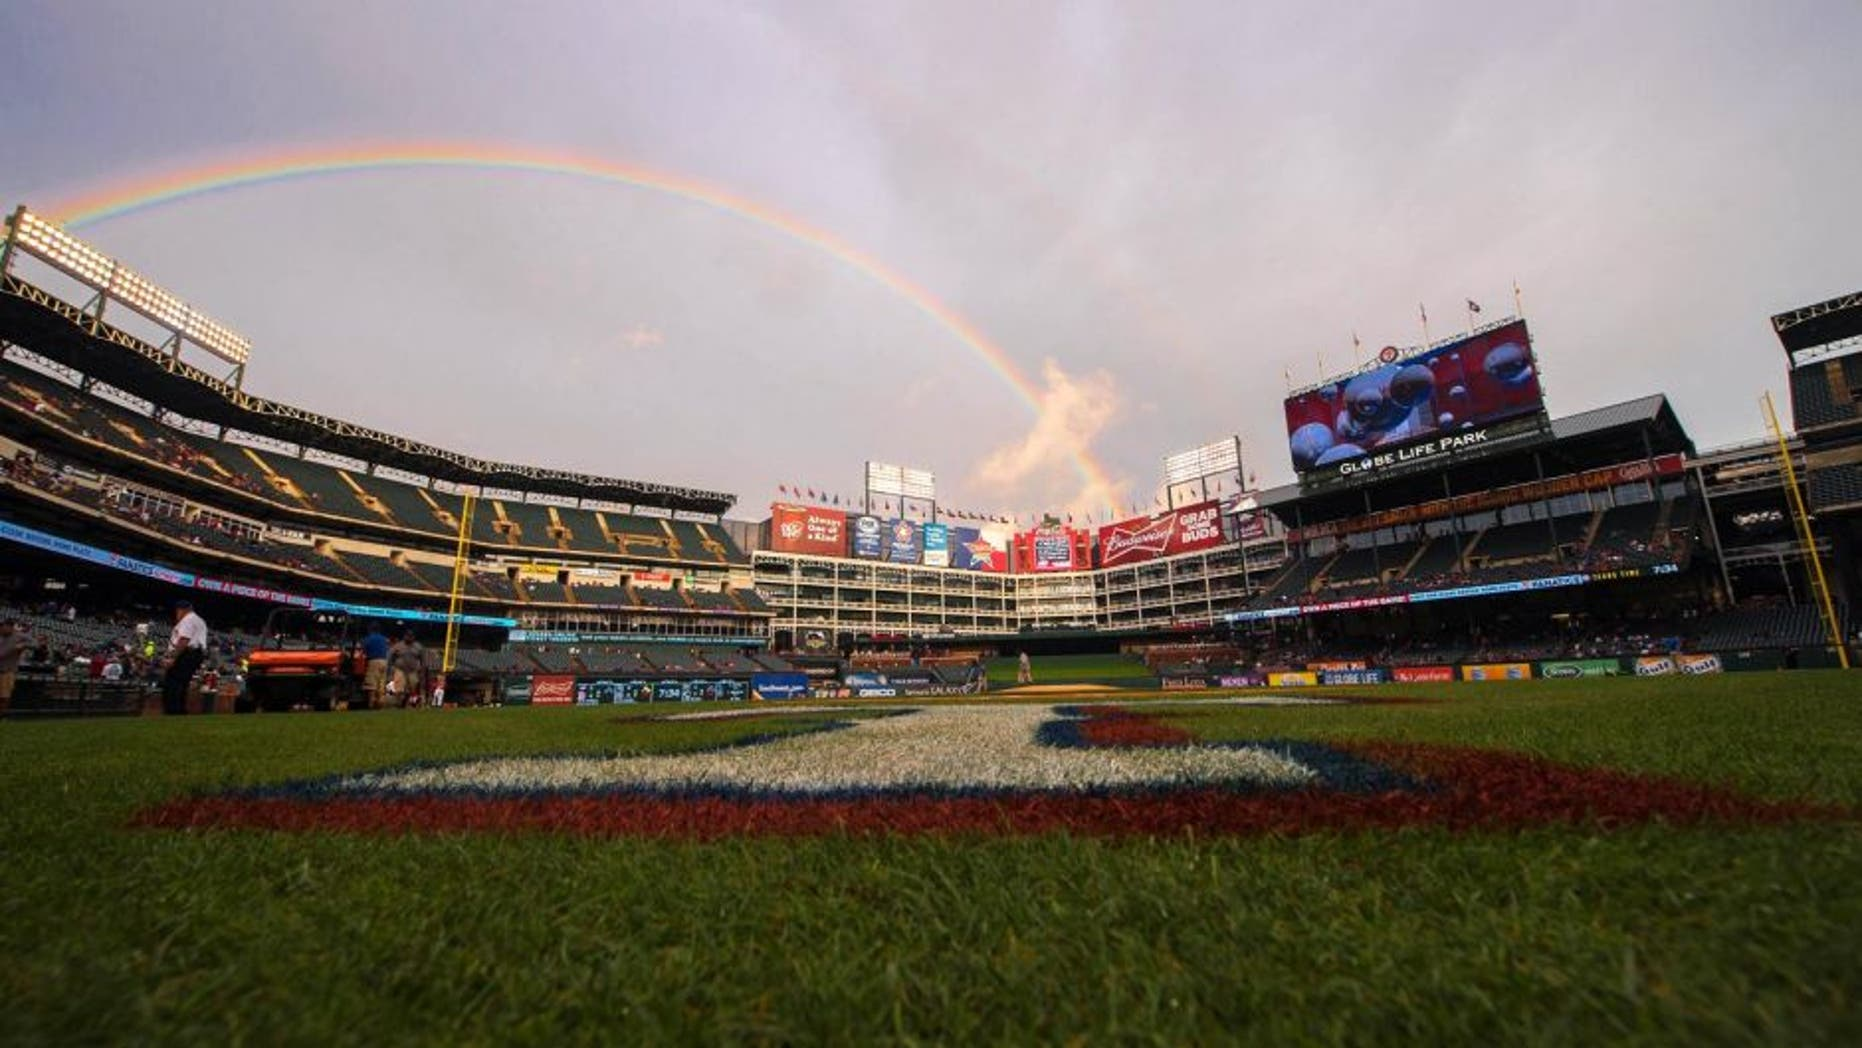 Apr 27, 2015; Arlington, TX, USA; A view of a rainbow above the field before the game between the Texas Rangers and the Seattle Mariners at Globe Life Park in Arlington. Mandatory Credit: Jerome Miron-USA TODAY Sports